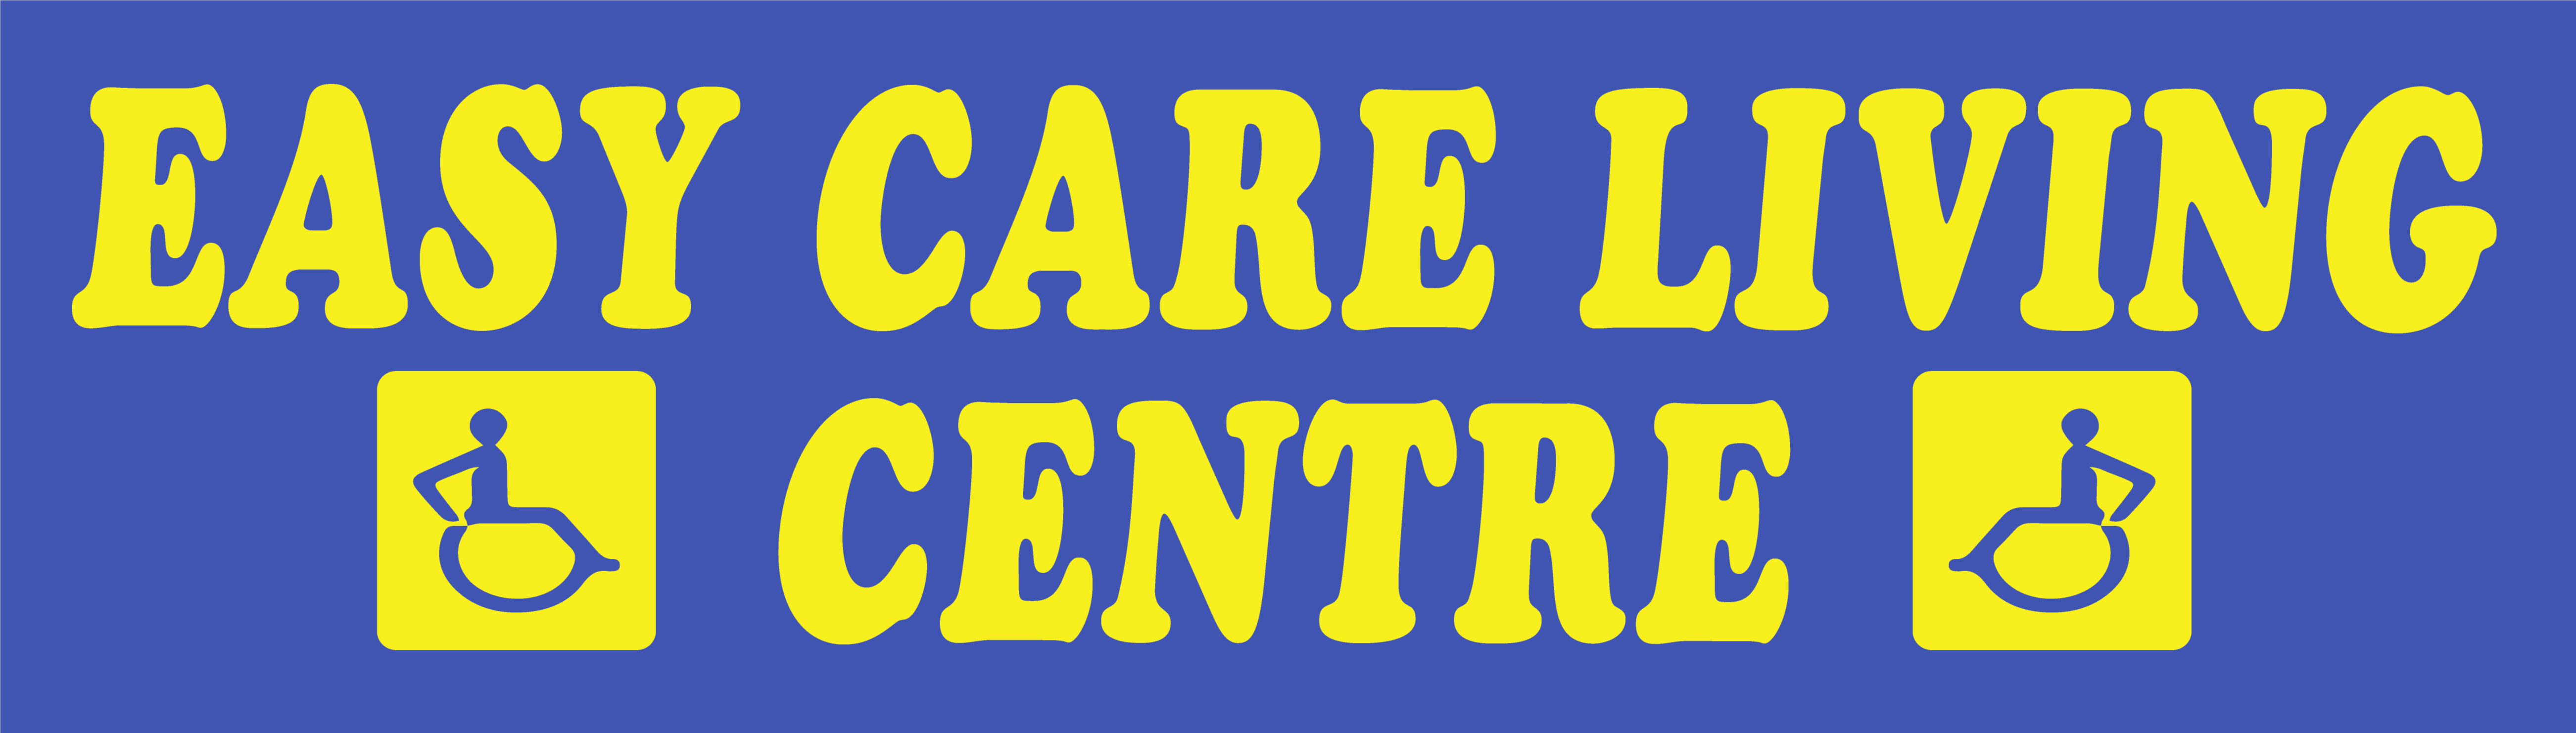 easy-care-living-logo